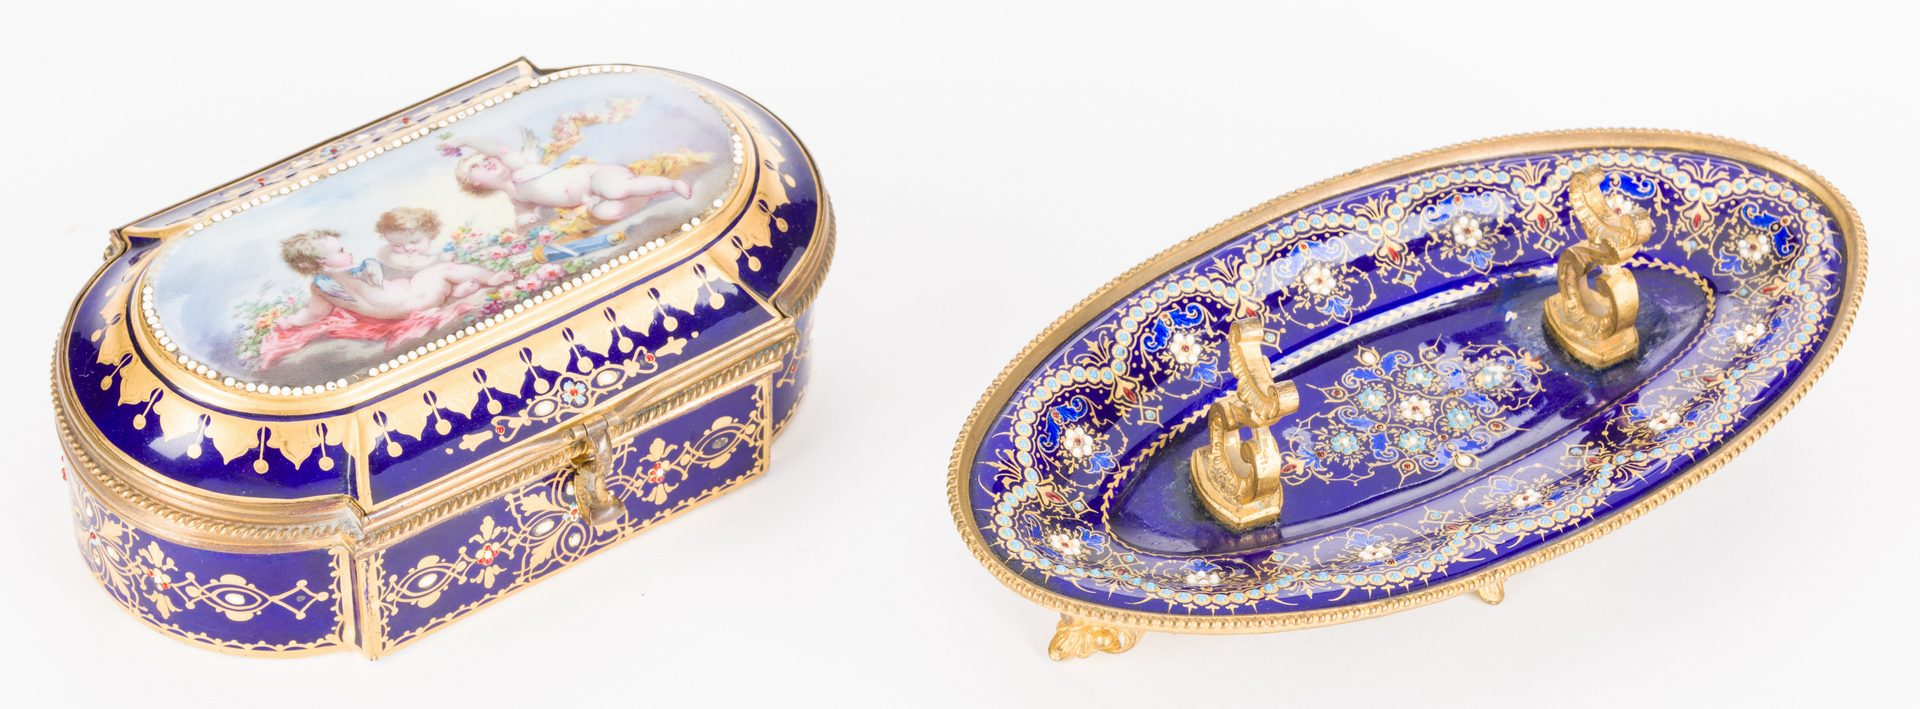 Lot 45: 19th c. French Enamels: Box & Tray